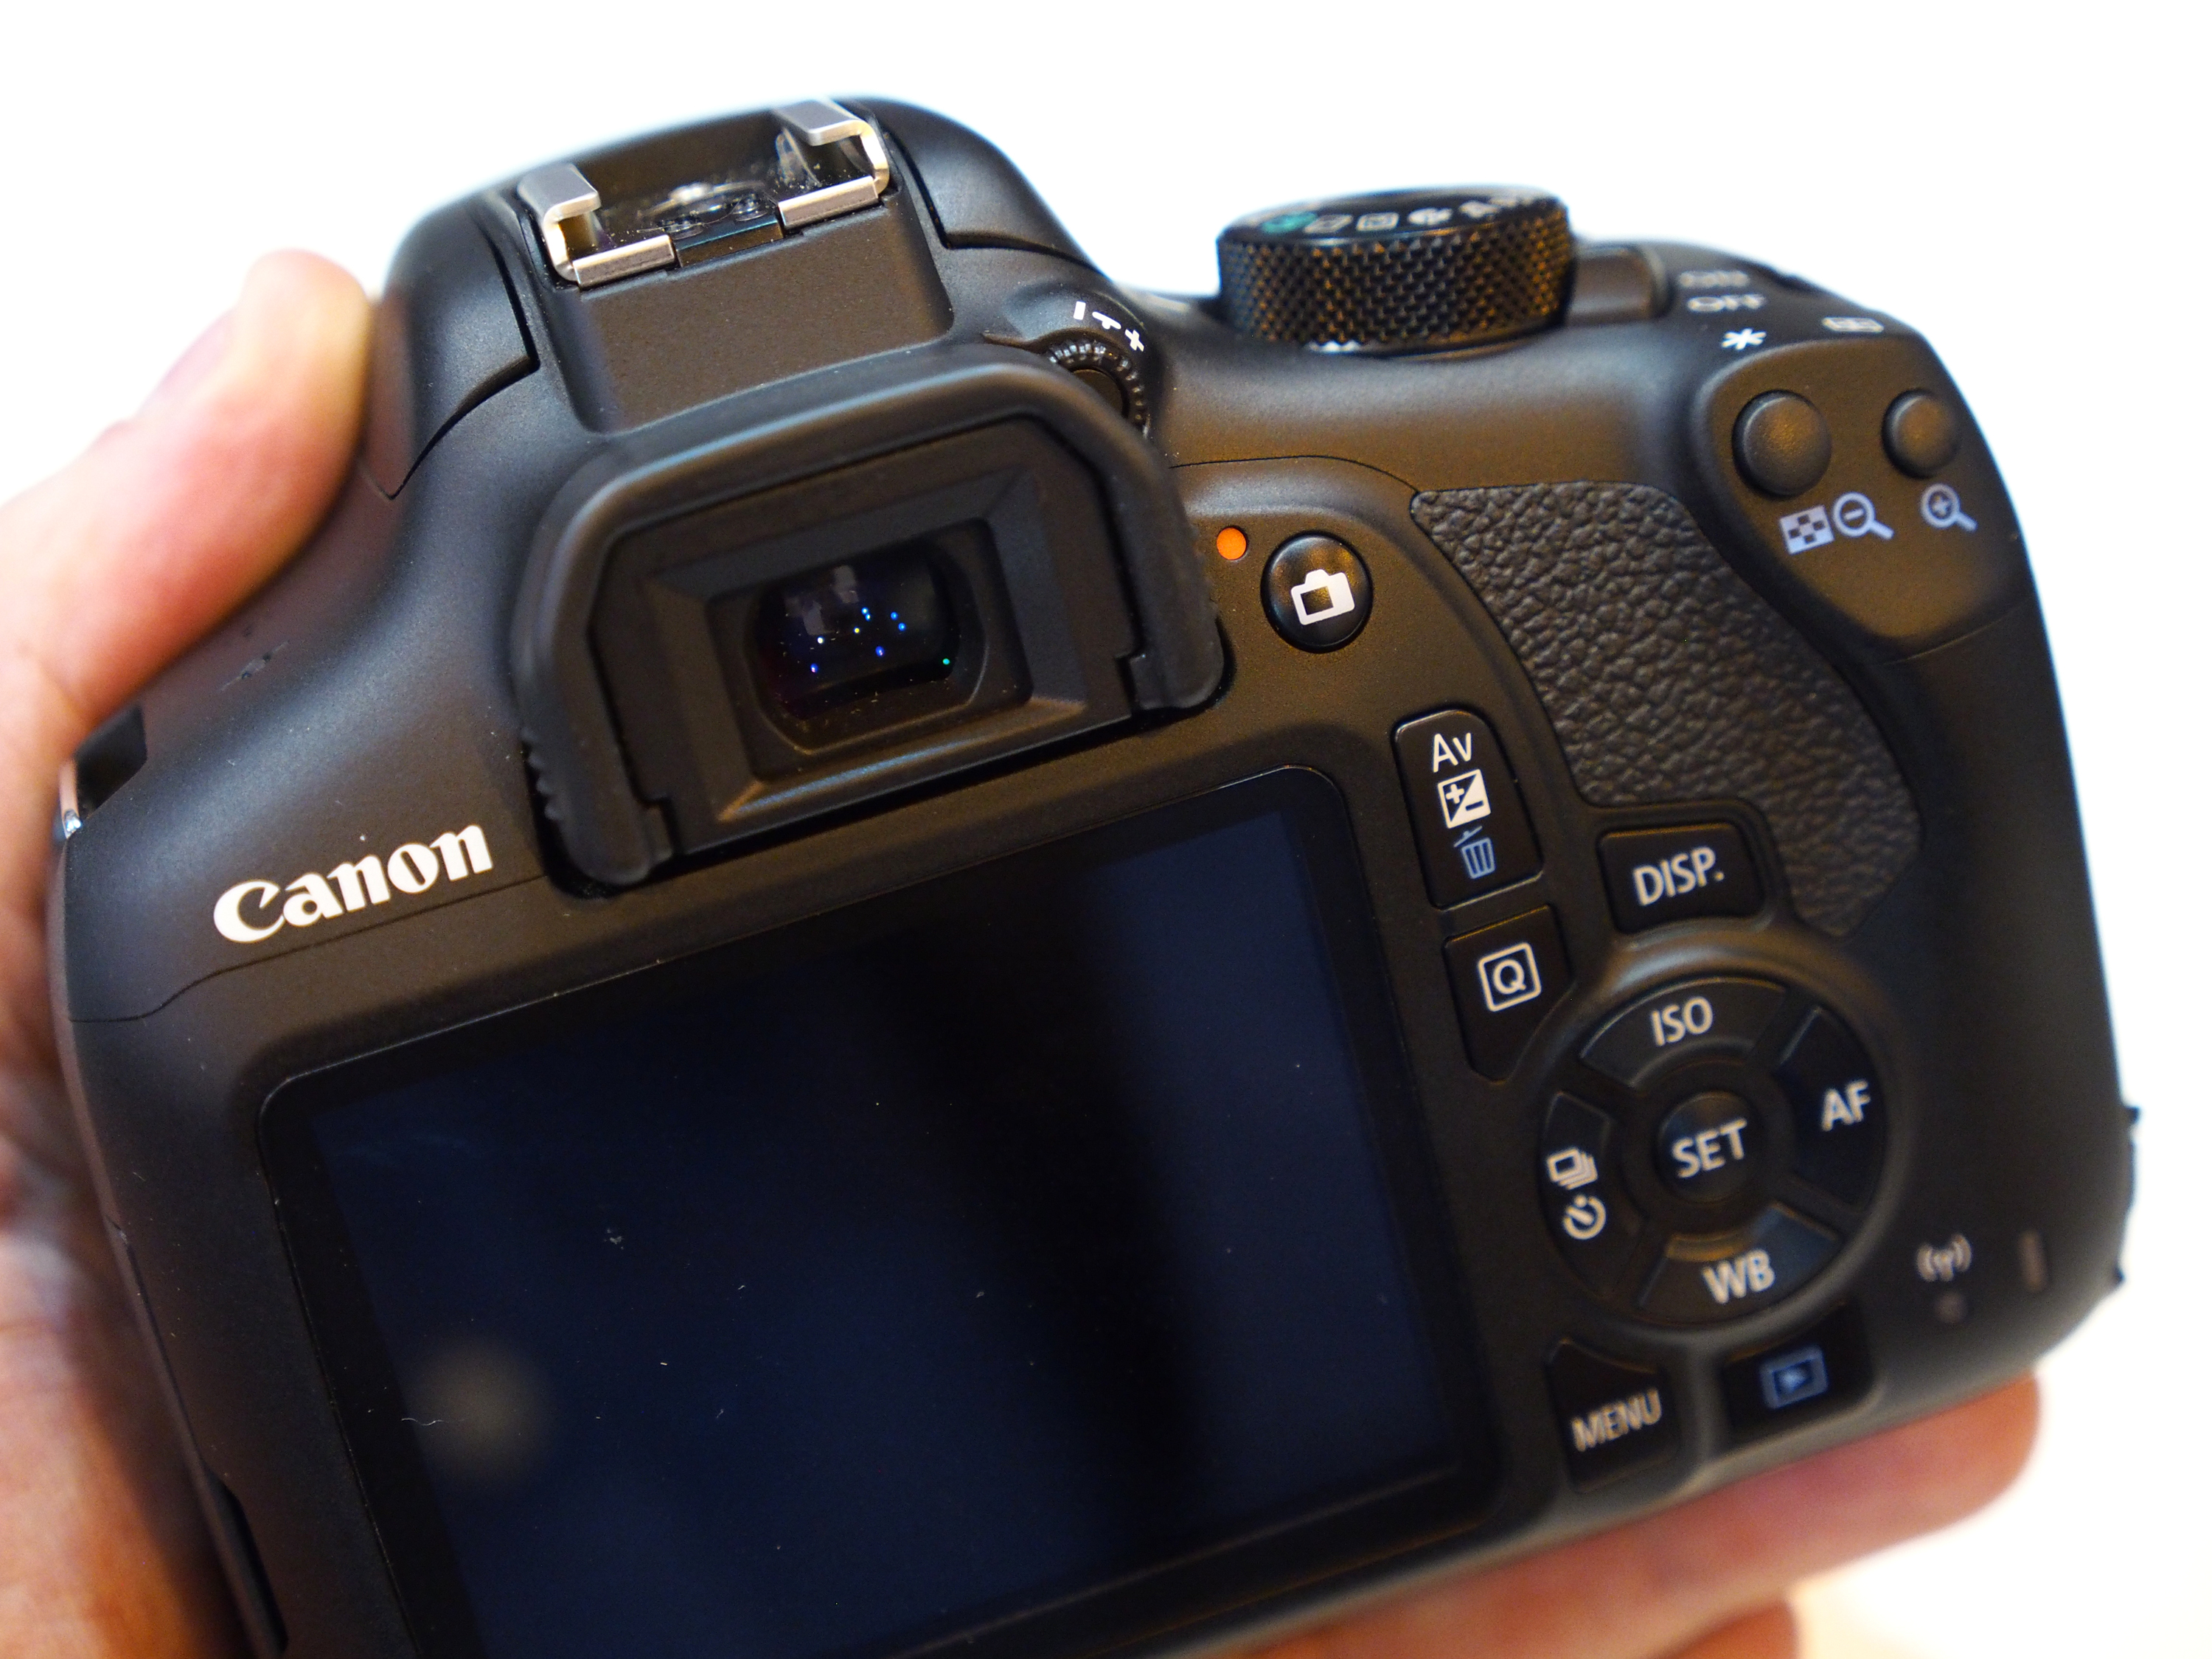 Canon Eos 1300d Dslr Hands On Preview